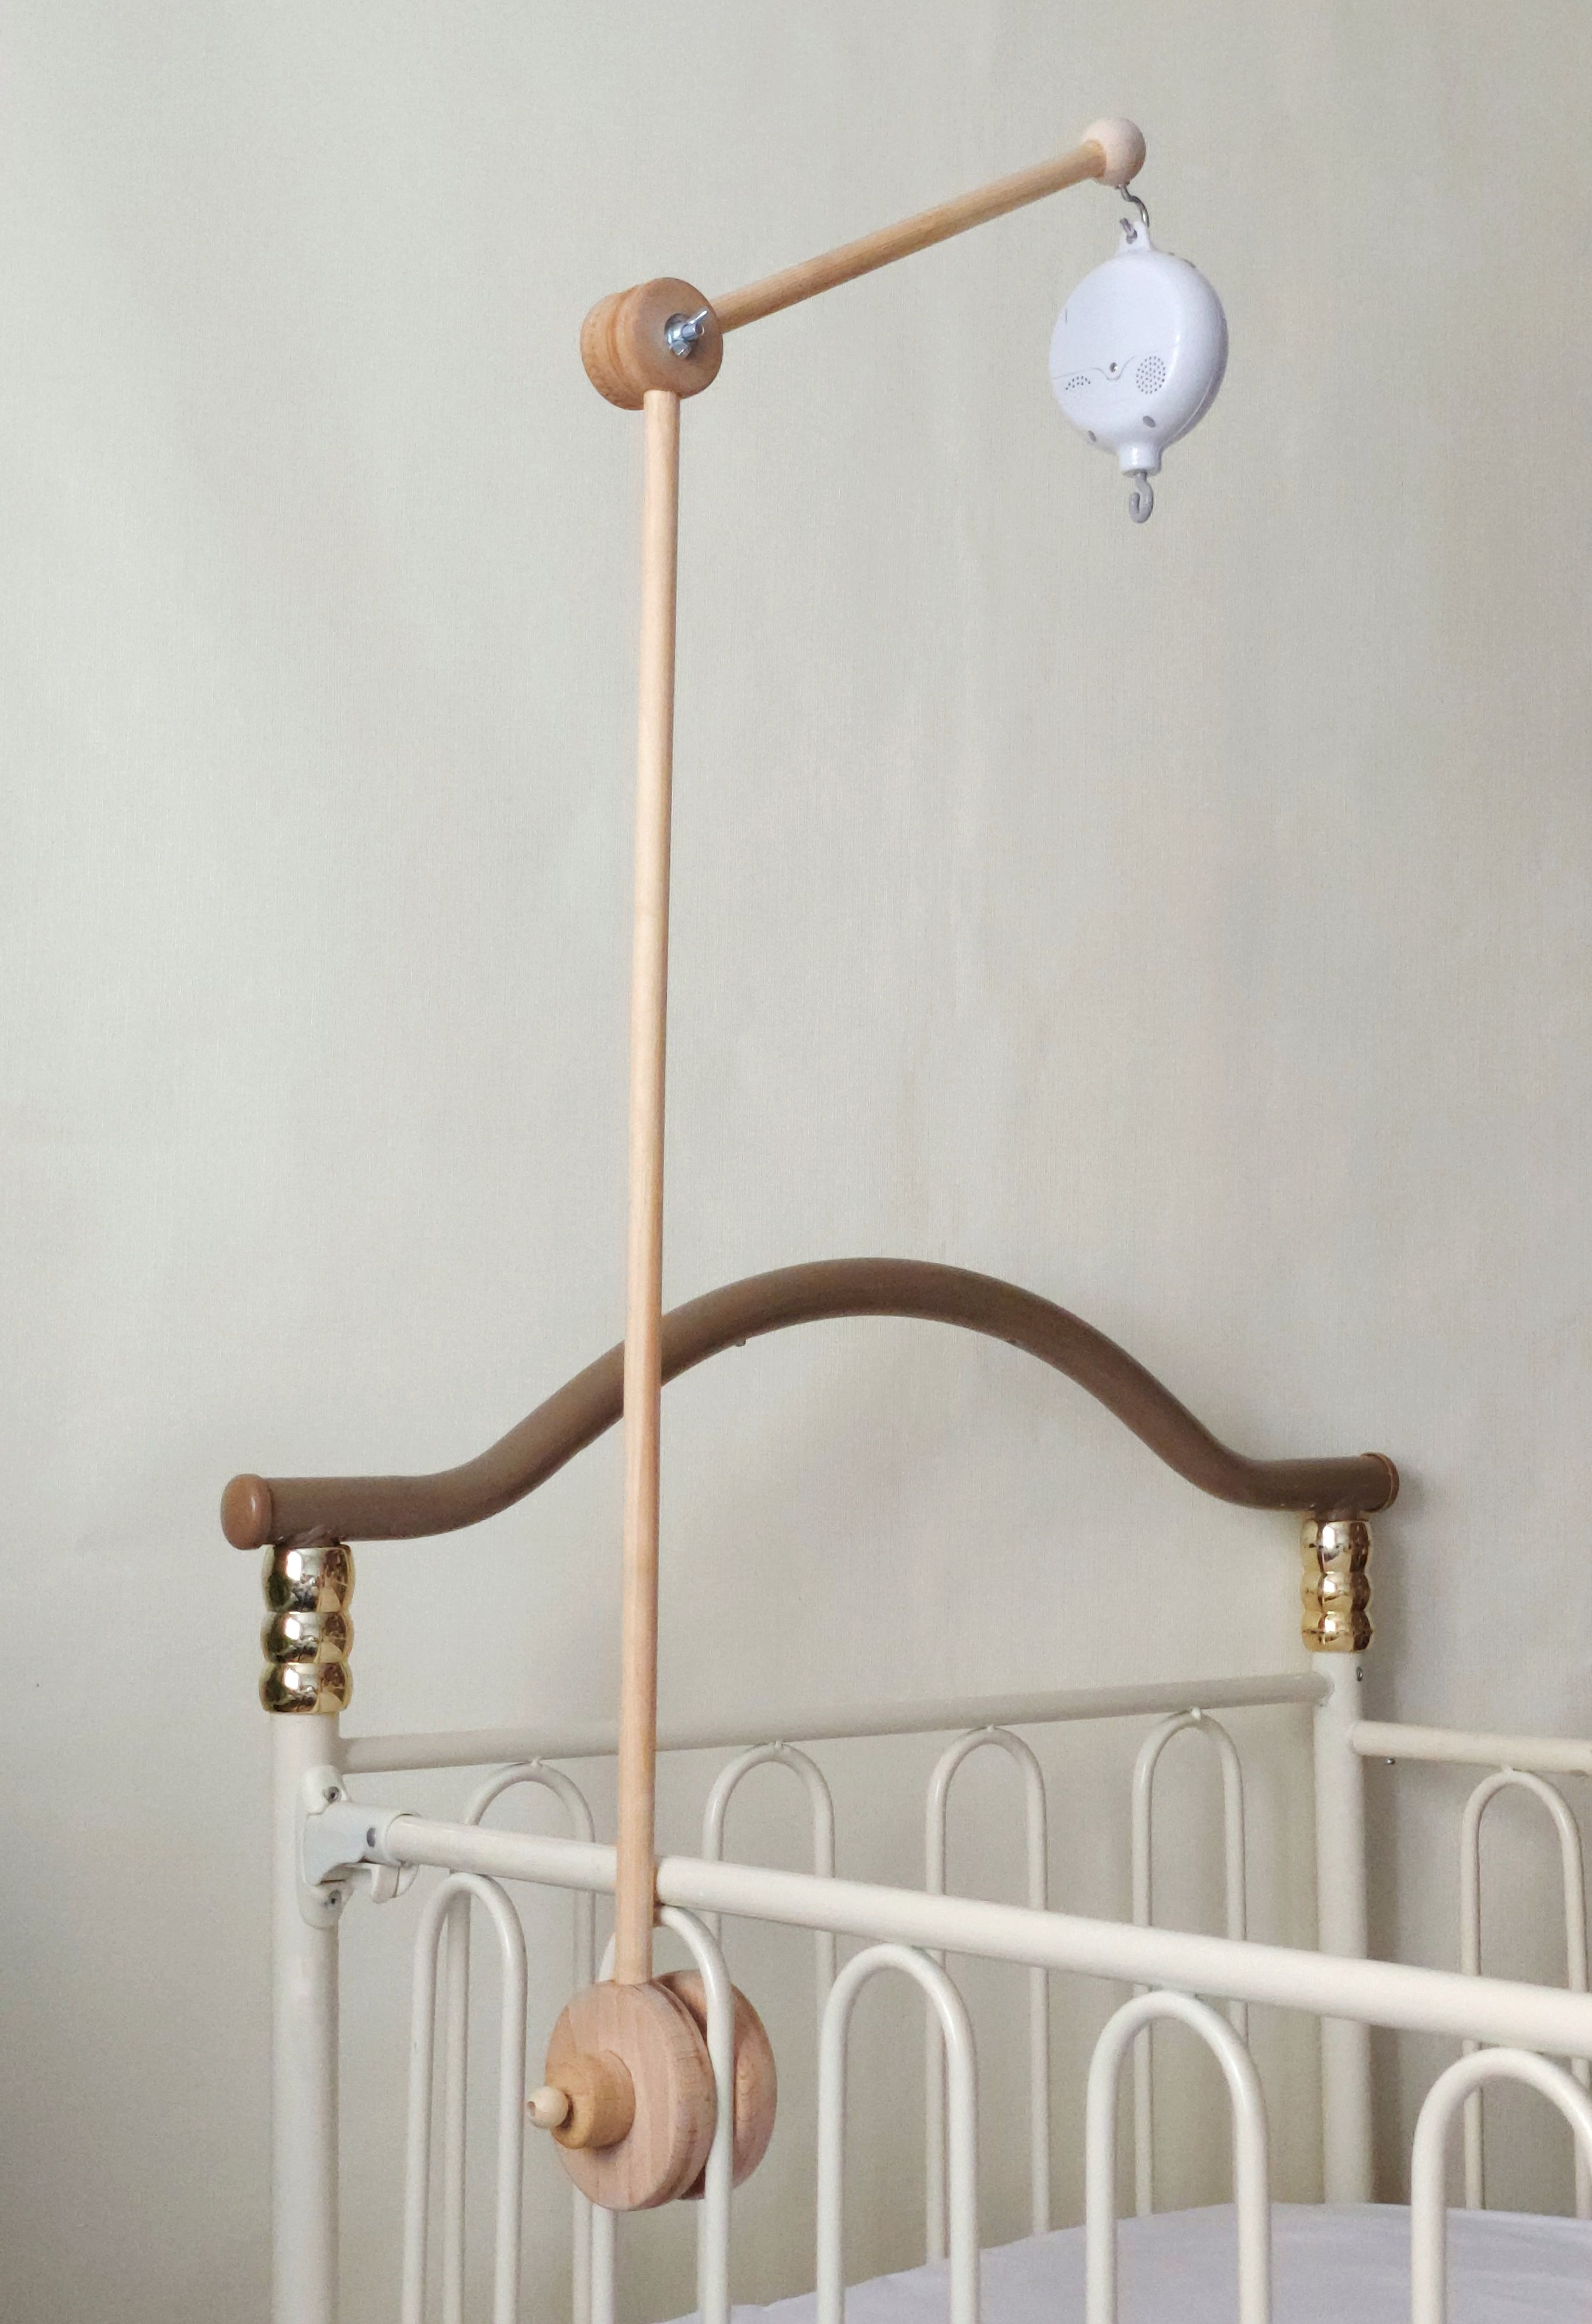 Crib Mobile Wood Arm Wooden Mount For Mobile Hanging Electronic Music Box With 35 Melodies For Baby Crib Mobile In 2020 Wood Arms Cot Mobile Crib Mobile